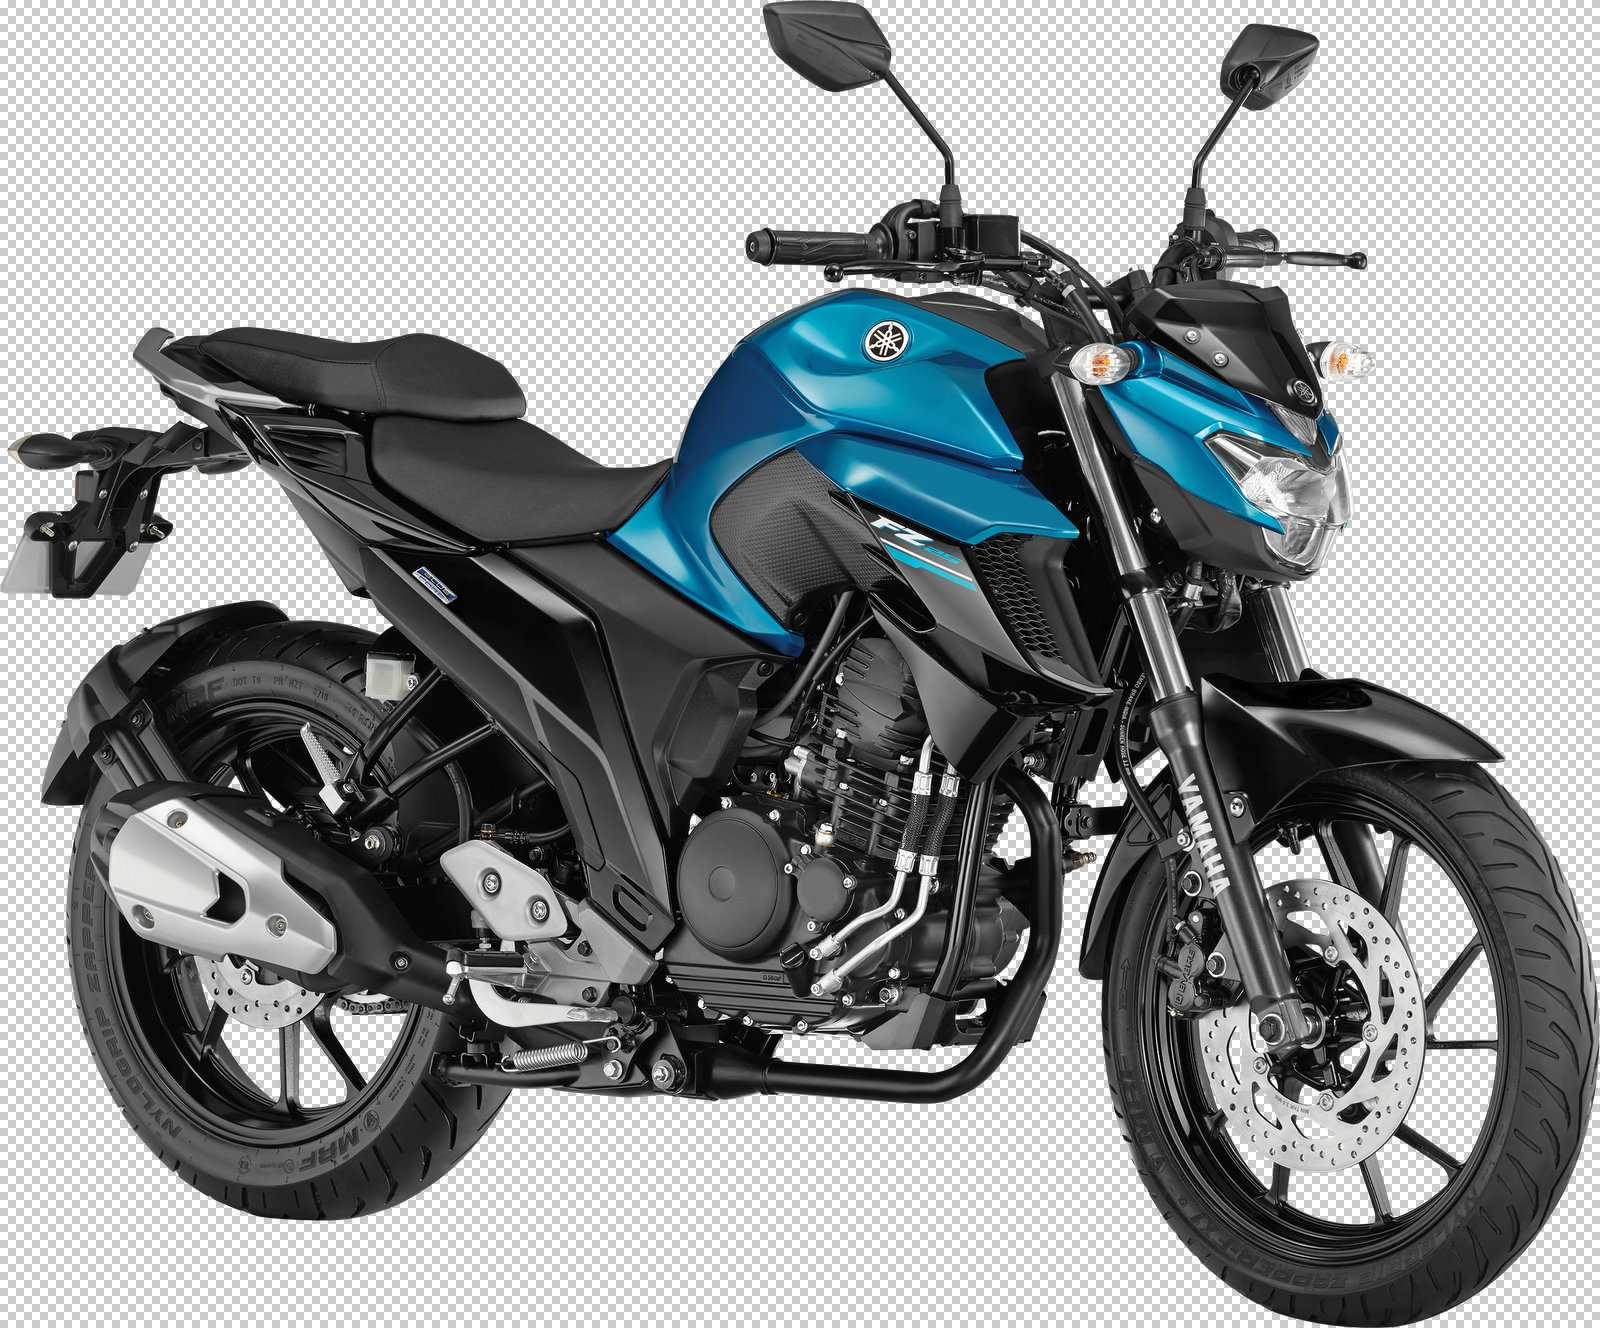 Yamaha Fz 25 Launched Rs 1 19 Lakh It S The Most